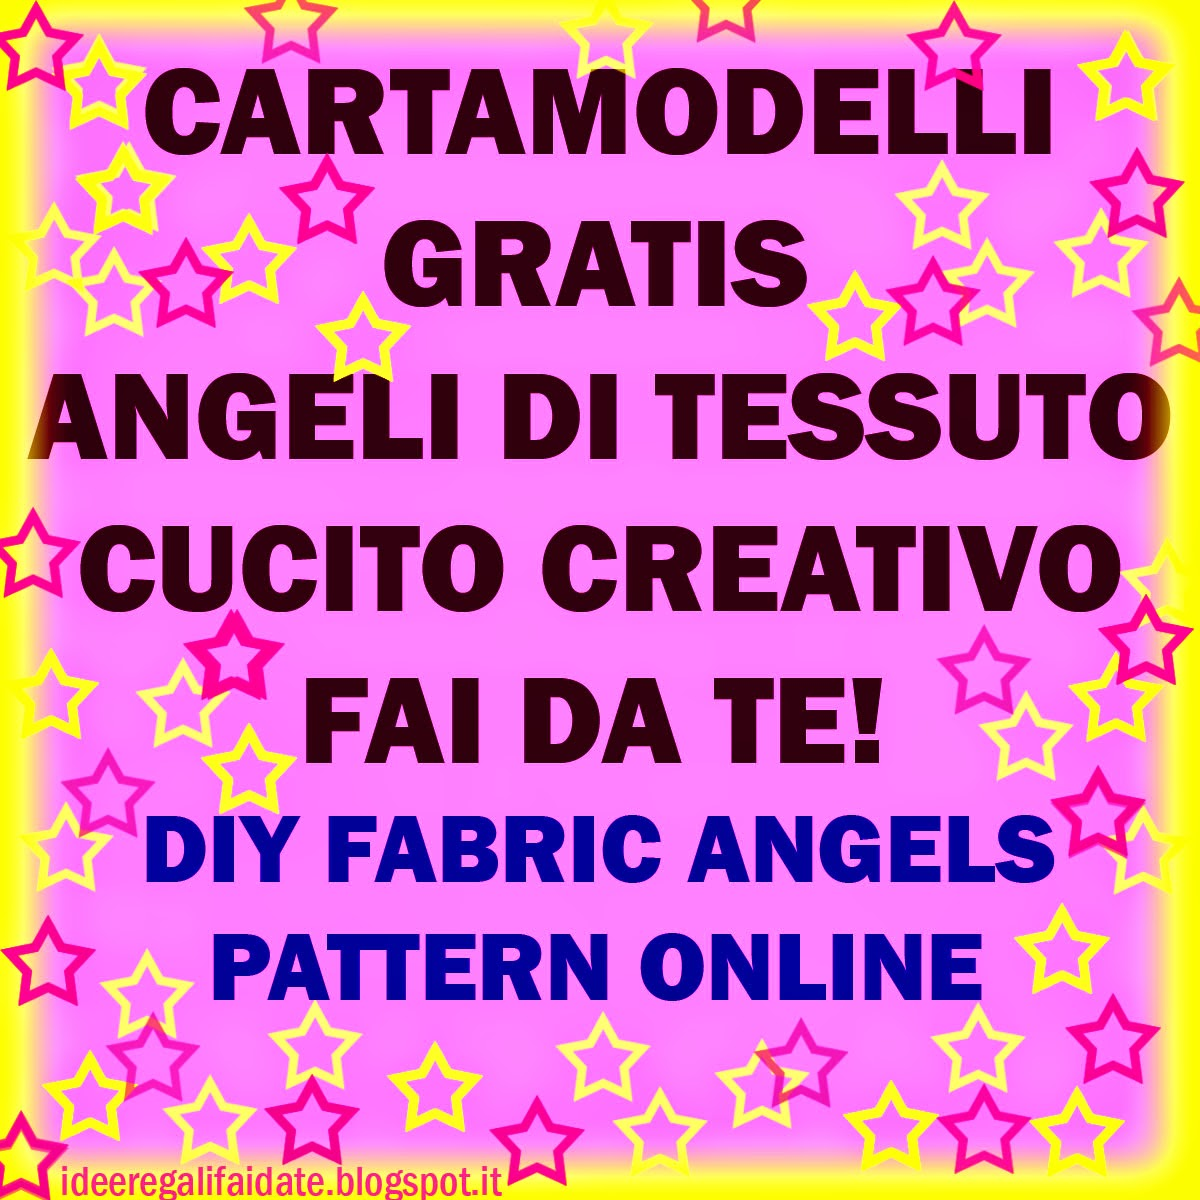 Cartamodello Grembiule Cucina Cartamodelli Angeli Gratis On Line Free Fabric Angel